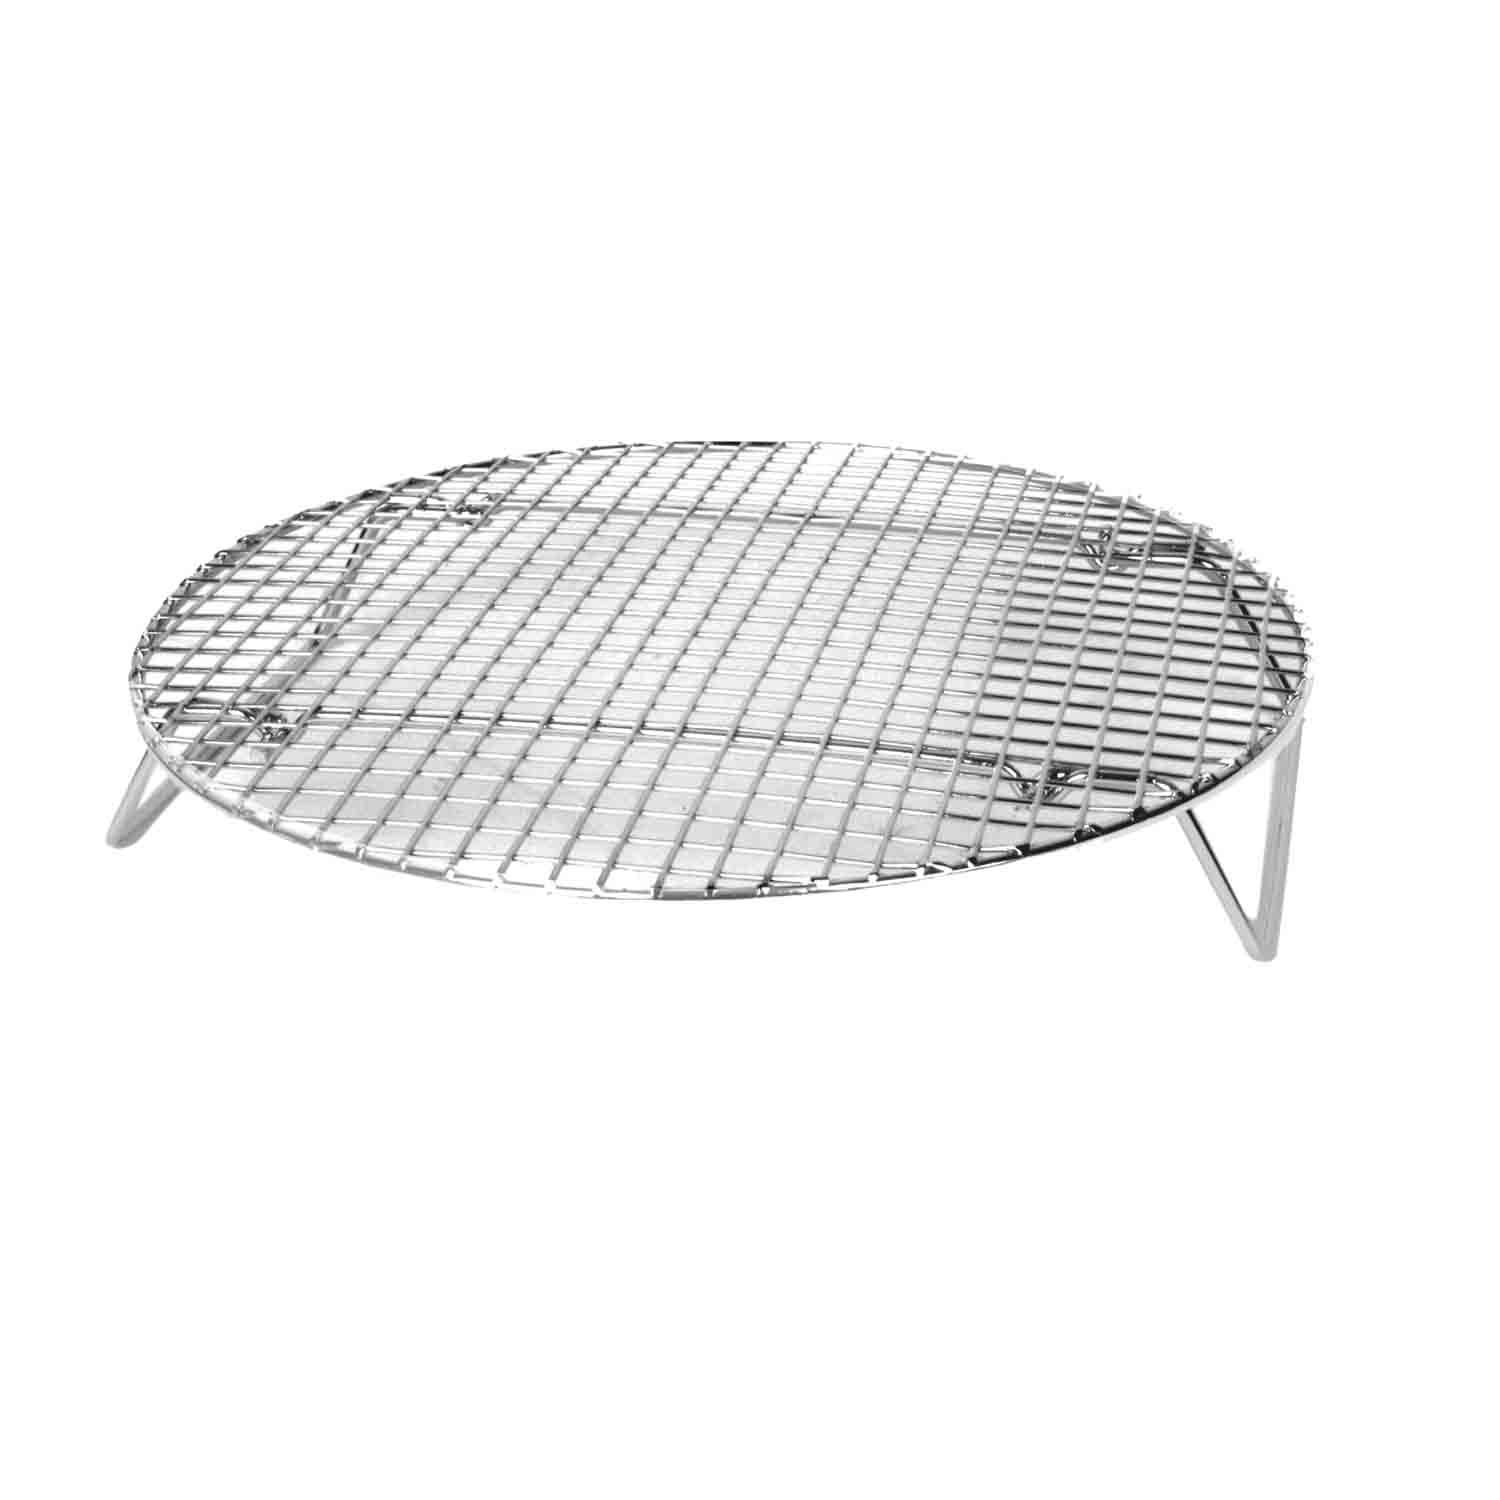 Excellante Nickel Plated Round Cooling/ Steamer Rack, 10-1/2-Inch